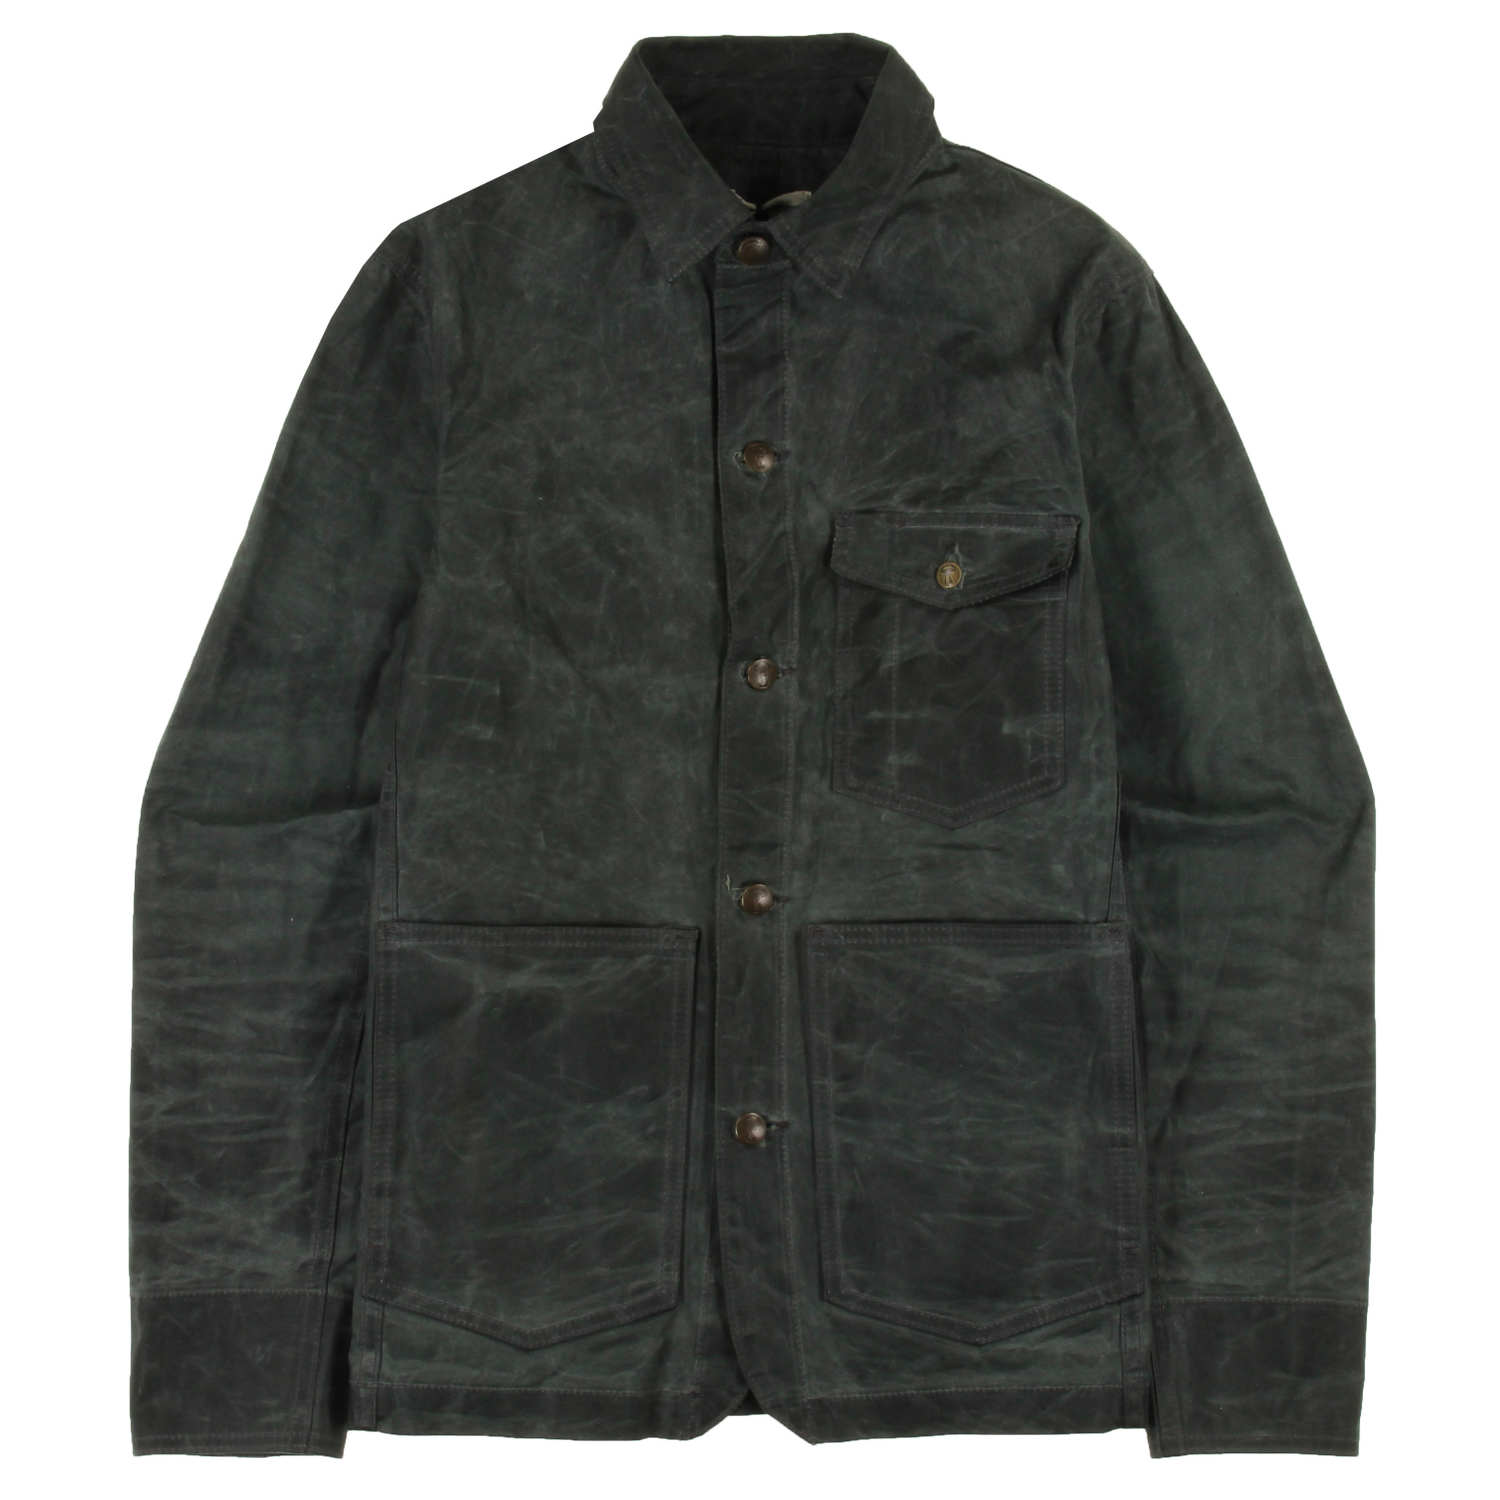 Vintage - The Project Jacket